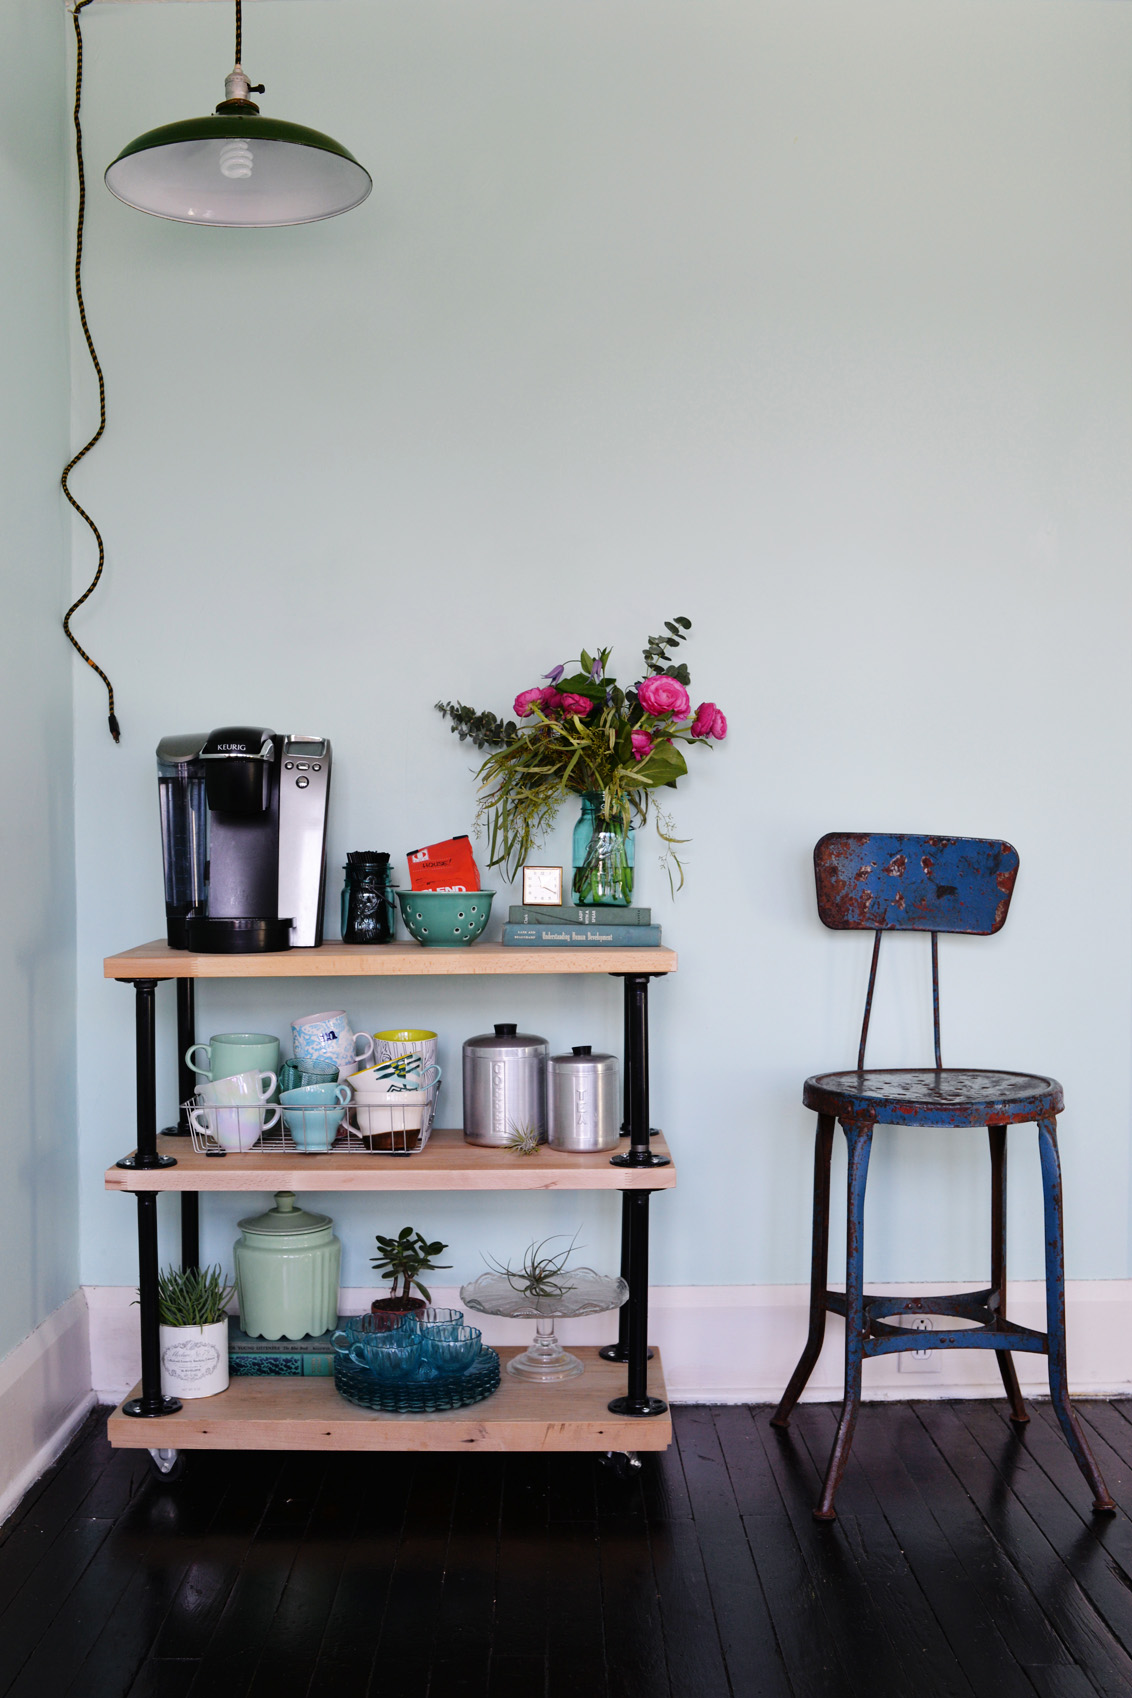 How To Build Or Update A Simple Coffee Cart